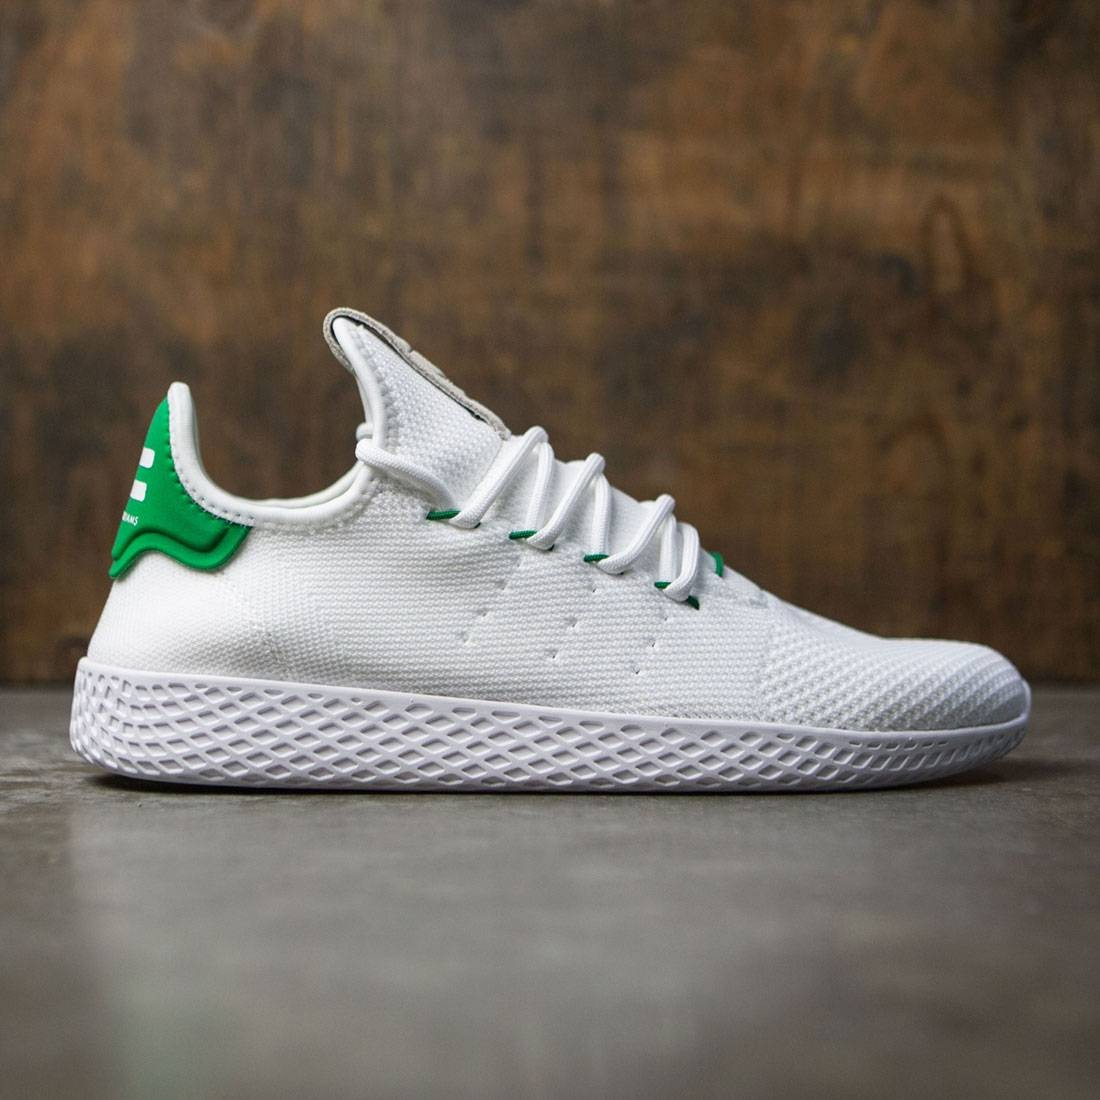 aaa1e11615e4c Adidas x Pharrell Williams Men Tennis HU white footwear white green